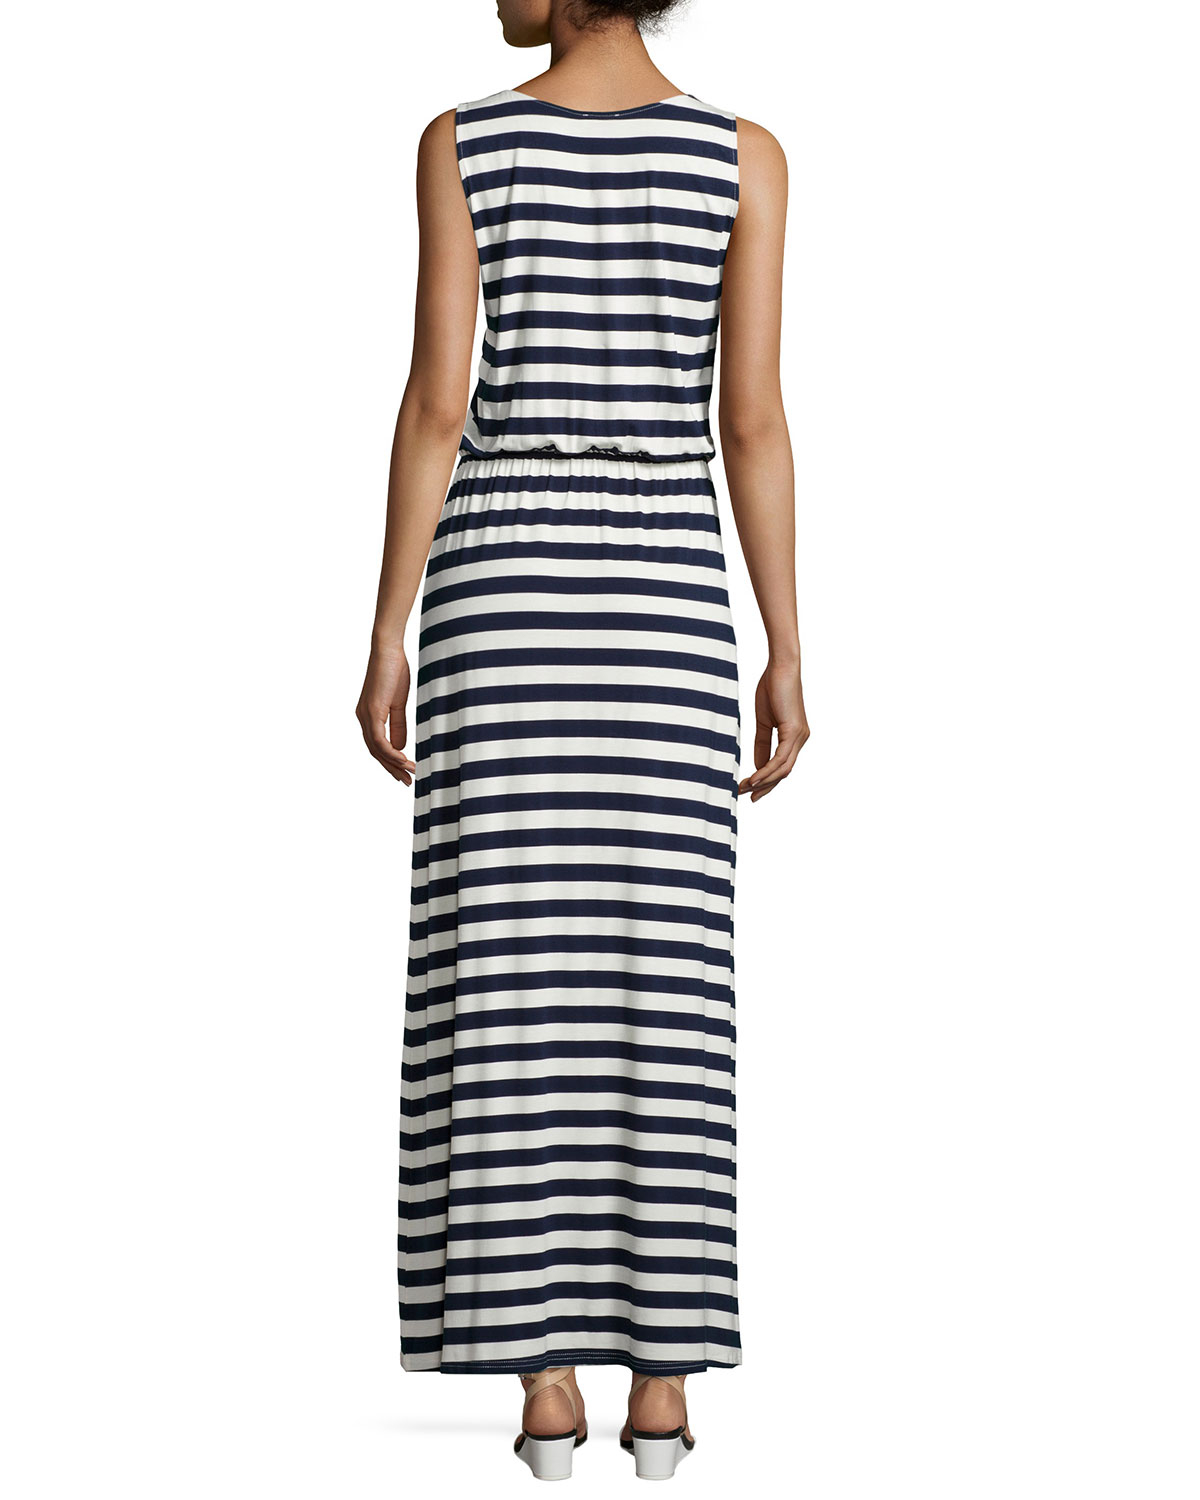 Lyst - Neiman Marcus Striped Maxi Dress W/ Embroidery in Blue